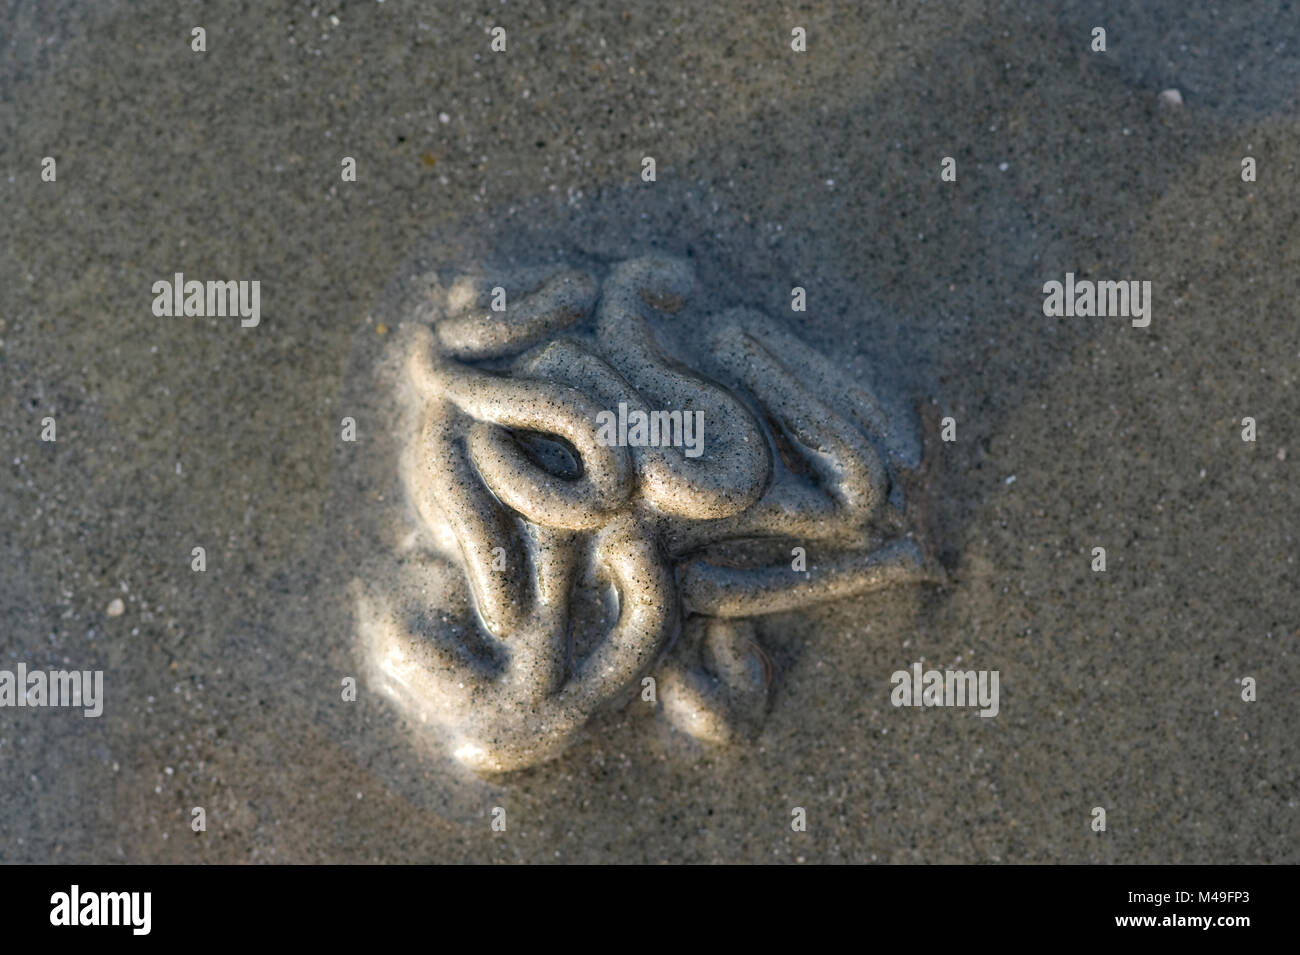 Lugworm casts on a beach in West Wittering, UK - Stock Image